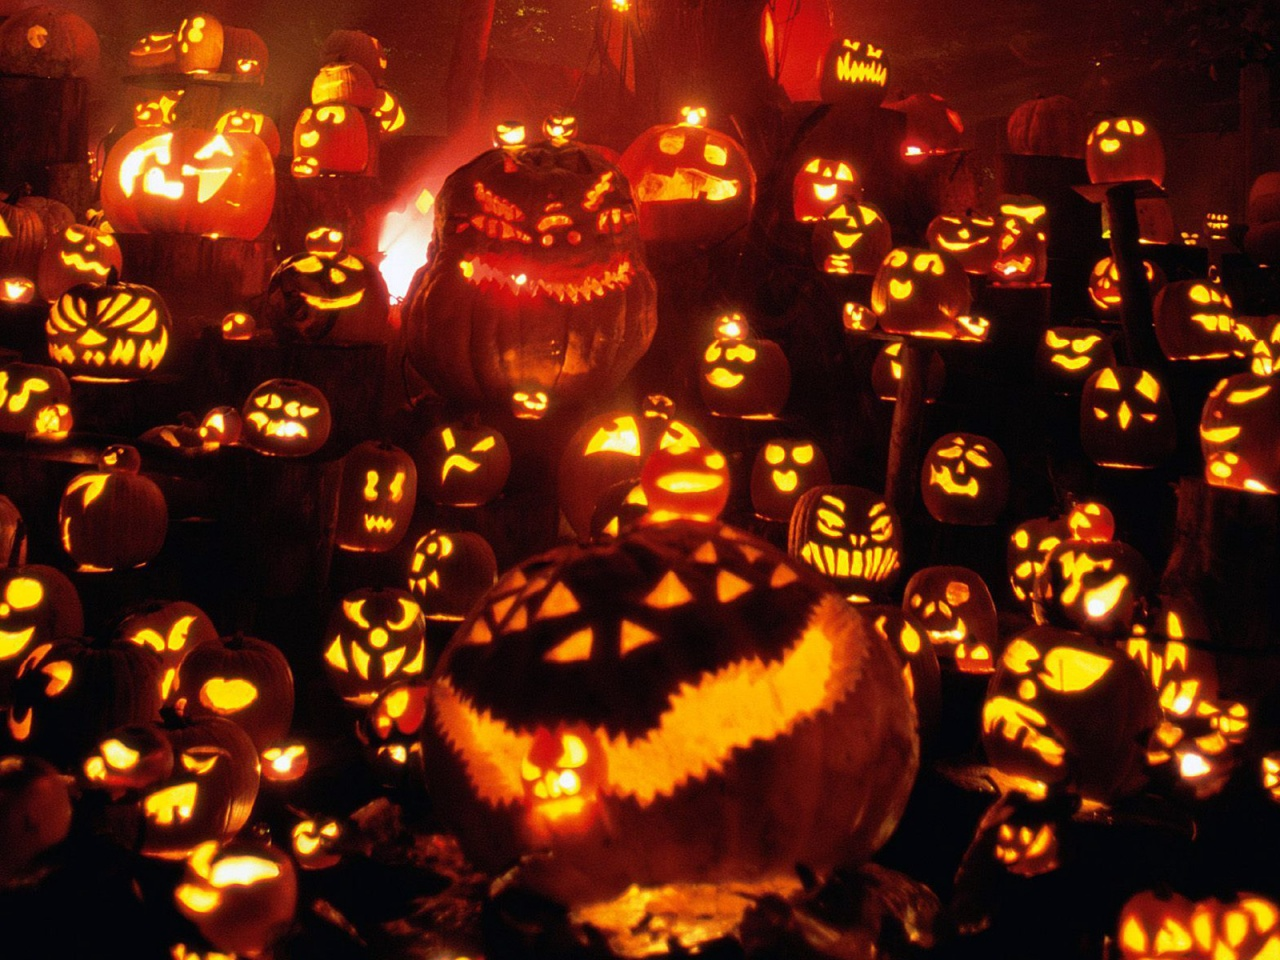 1024x768 1152x864 1280x1024 1600x1200 1280x960. Pumpkin invasion - halloween wallpaper